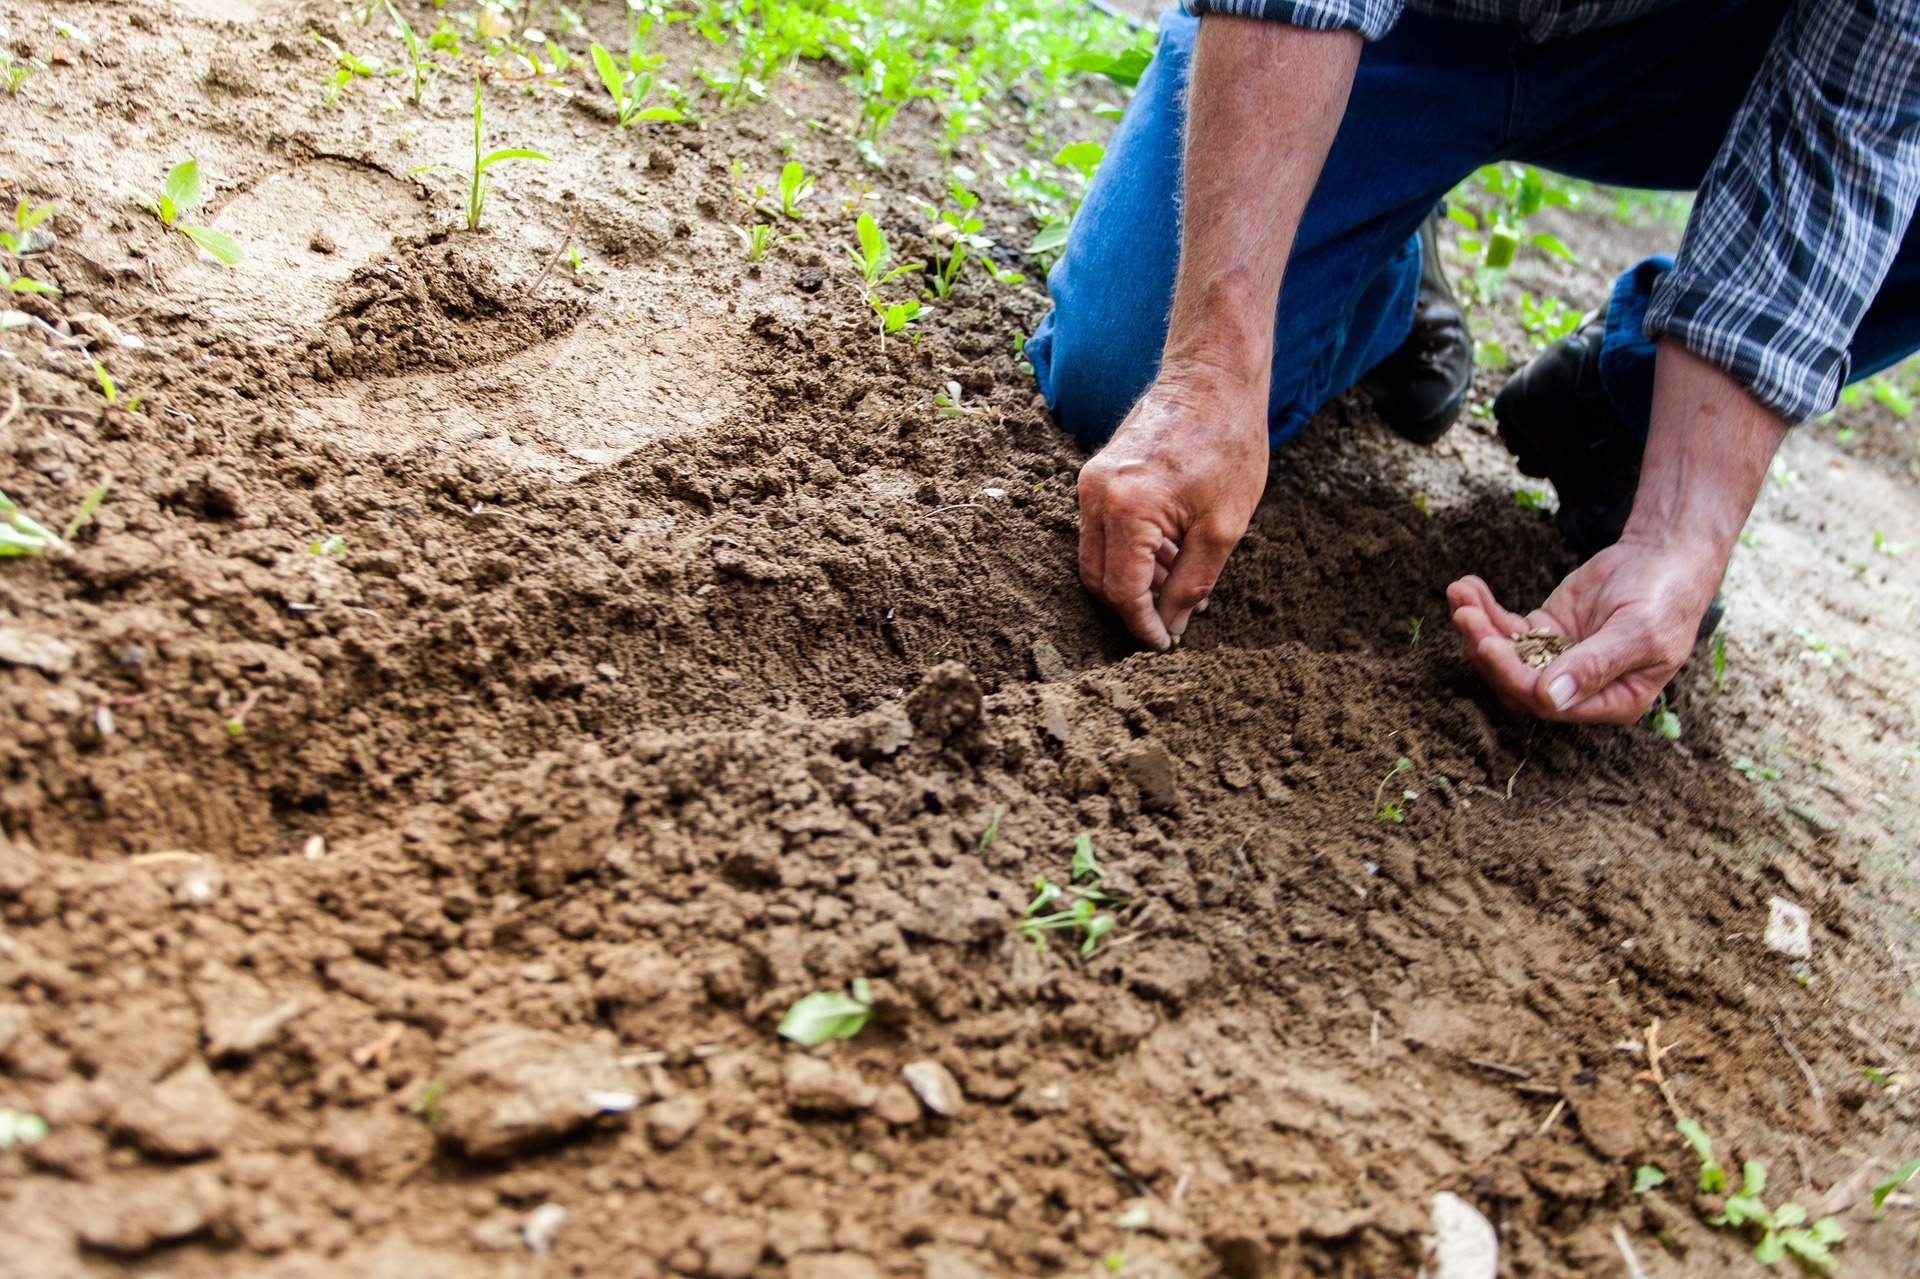 A photo of a gardener sowing seeds into soil